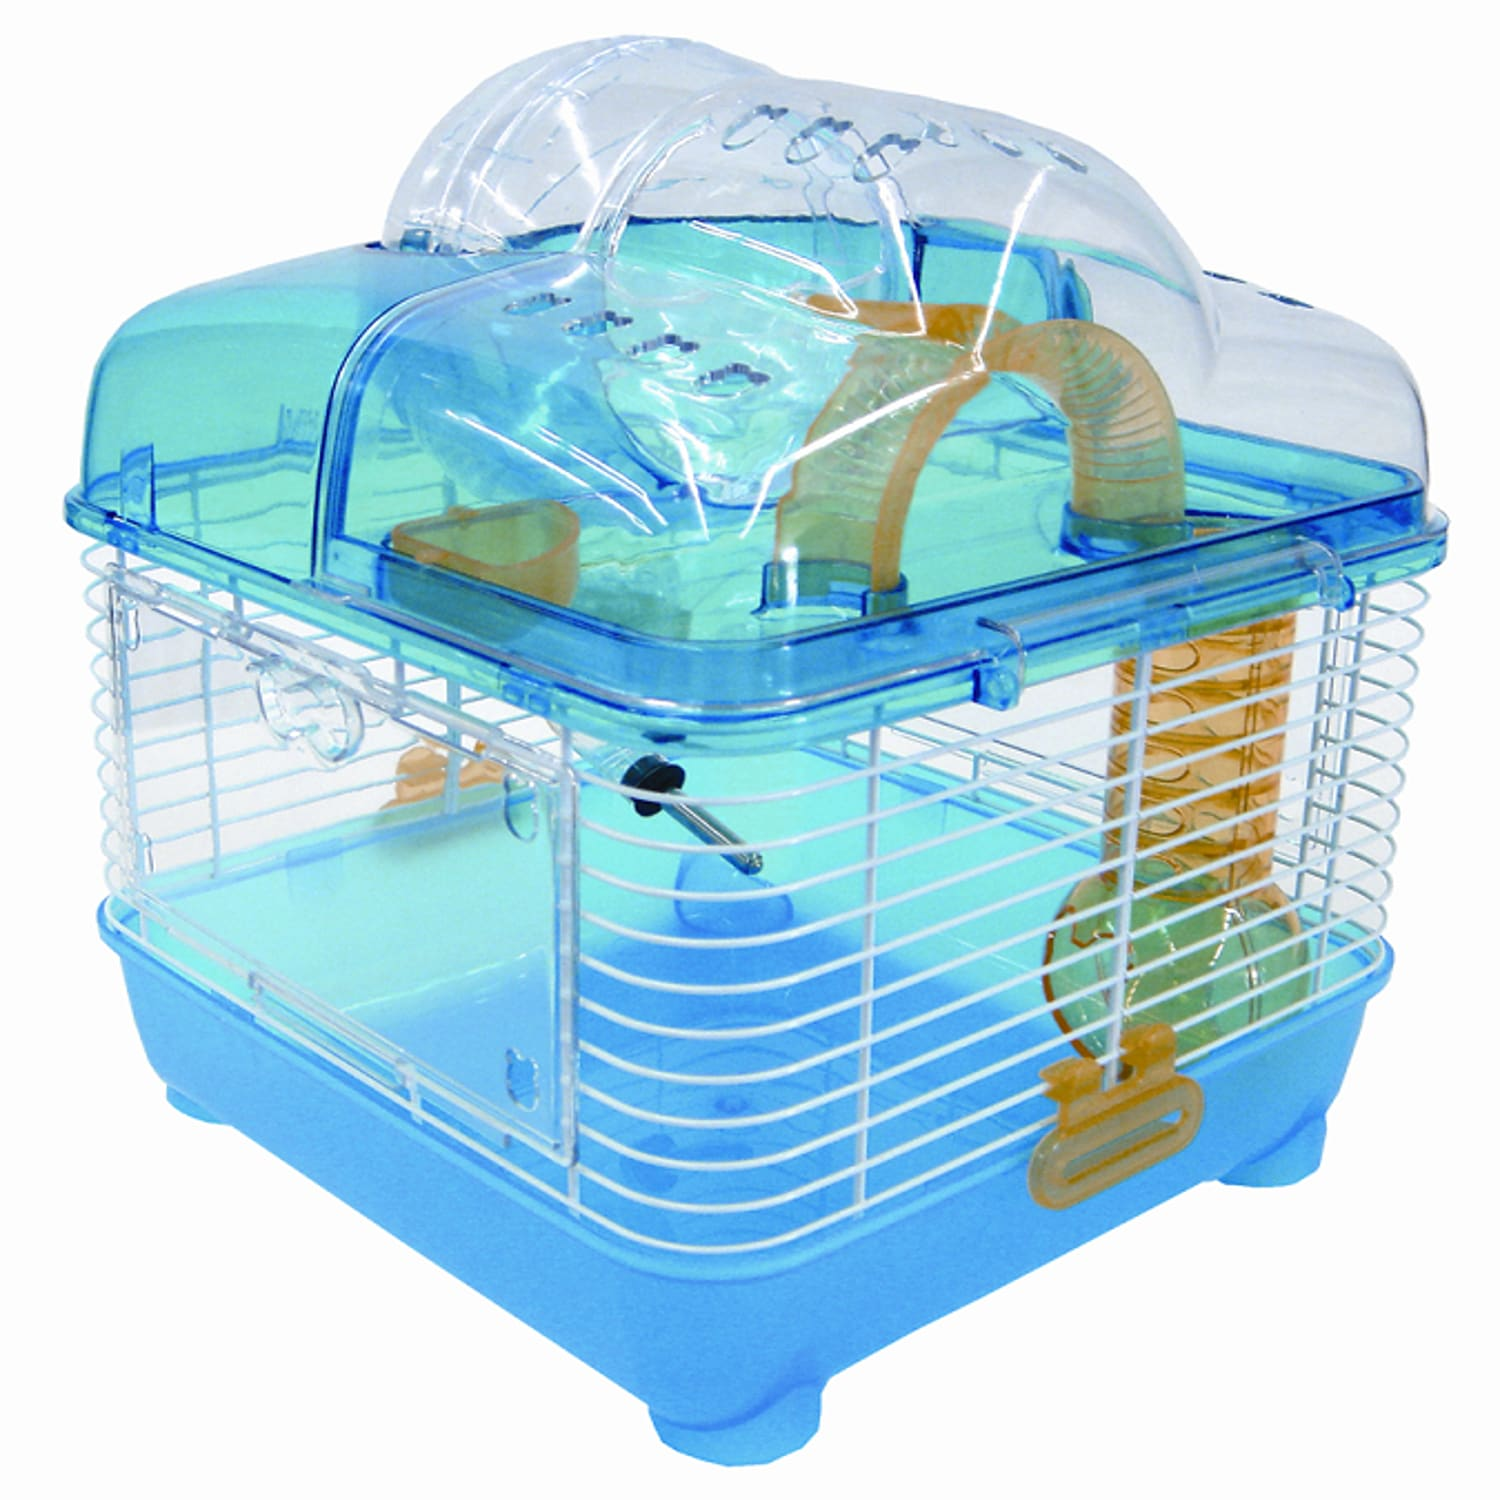 "Image of YML Clear Blue Hamster Cage, 10"" L X 10"" W X 12"" H, 10 IN"